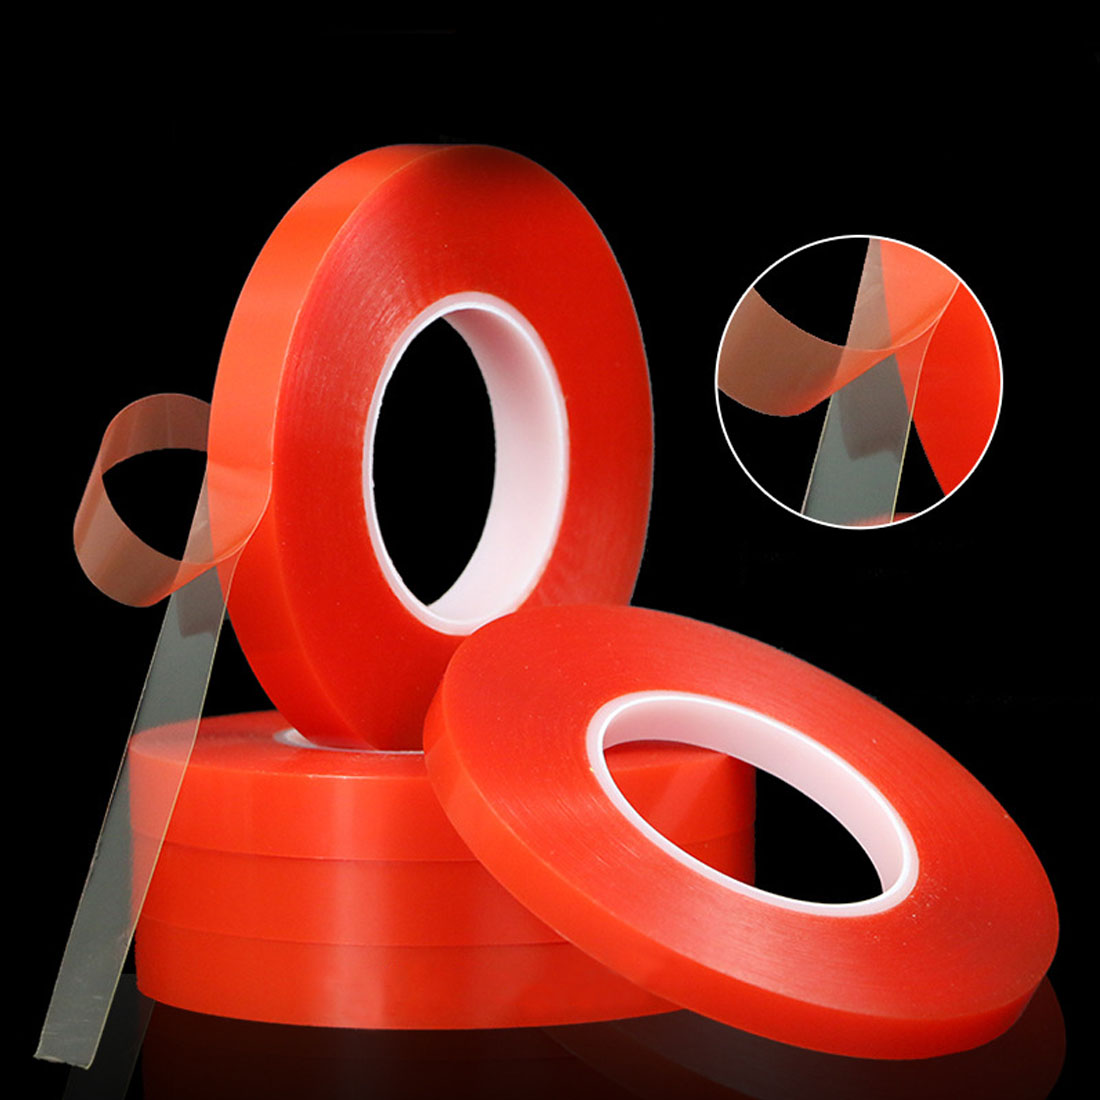 New Double Sided Tape 5mm 50M Strong Acrylic Adhesive Red Film Clear Sticker For Mobile Phone LCD Pannel Display Screen Repair